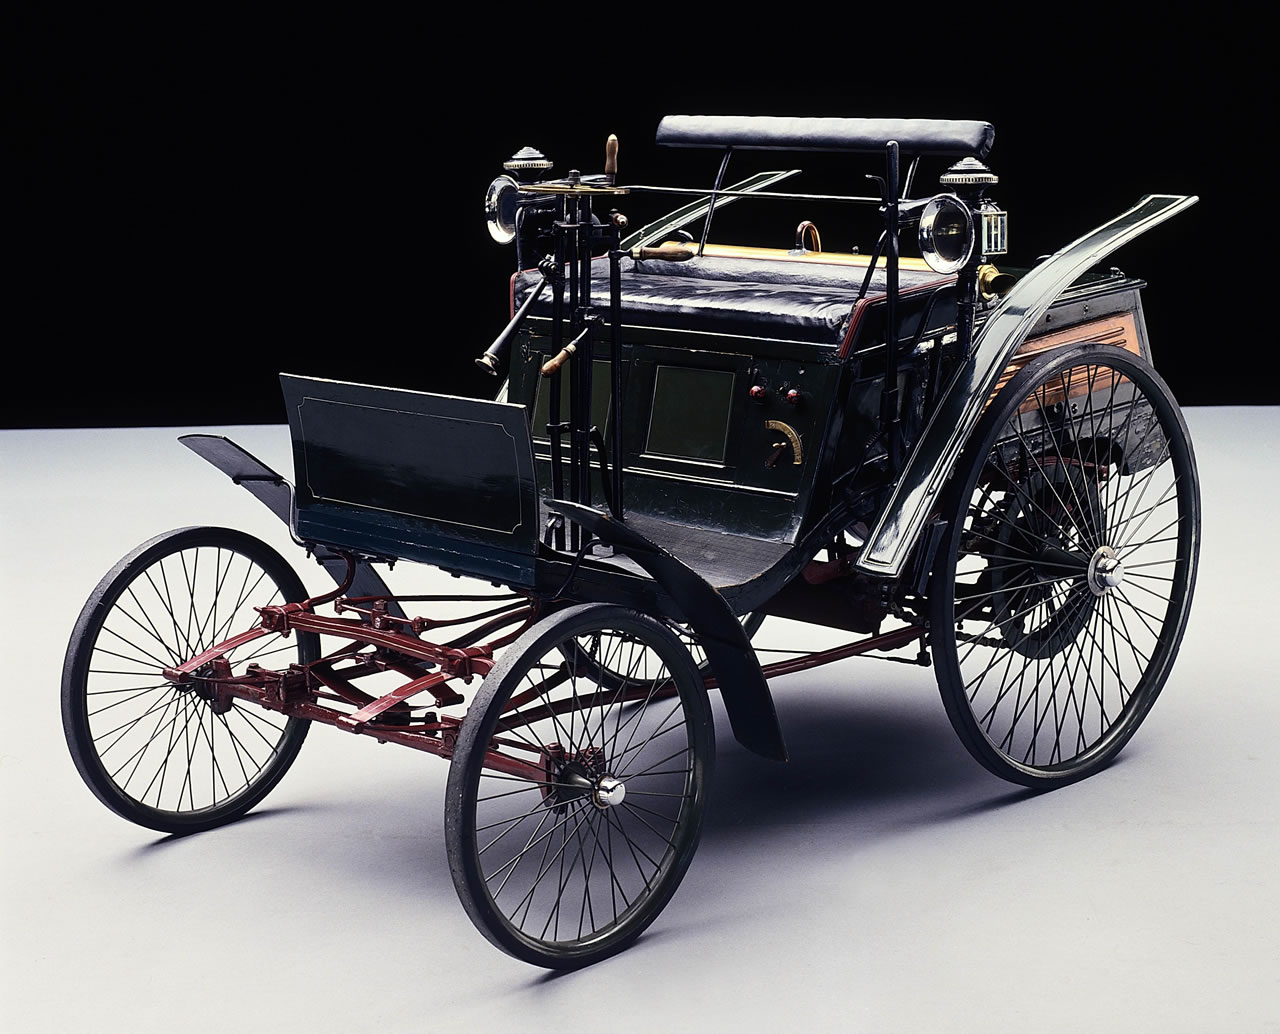 first motorcycle 1885. german engineer gottlieb daimler and inventor wilhelm maybach mounted a gasoline-powered engine onto bicycle, creating motorcycle, in 1885. first motorcycle 1885